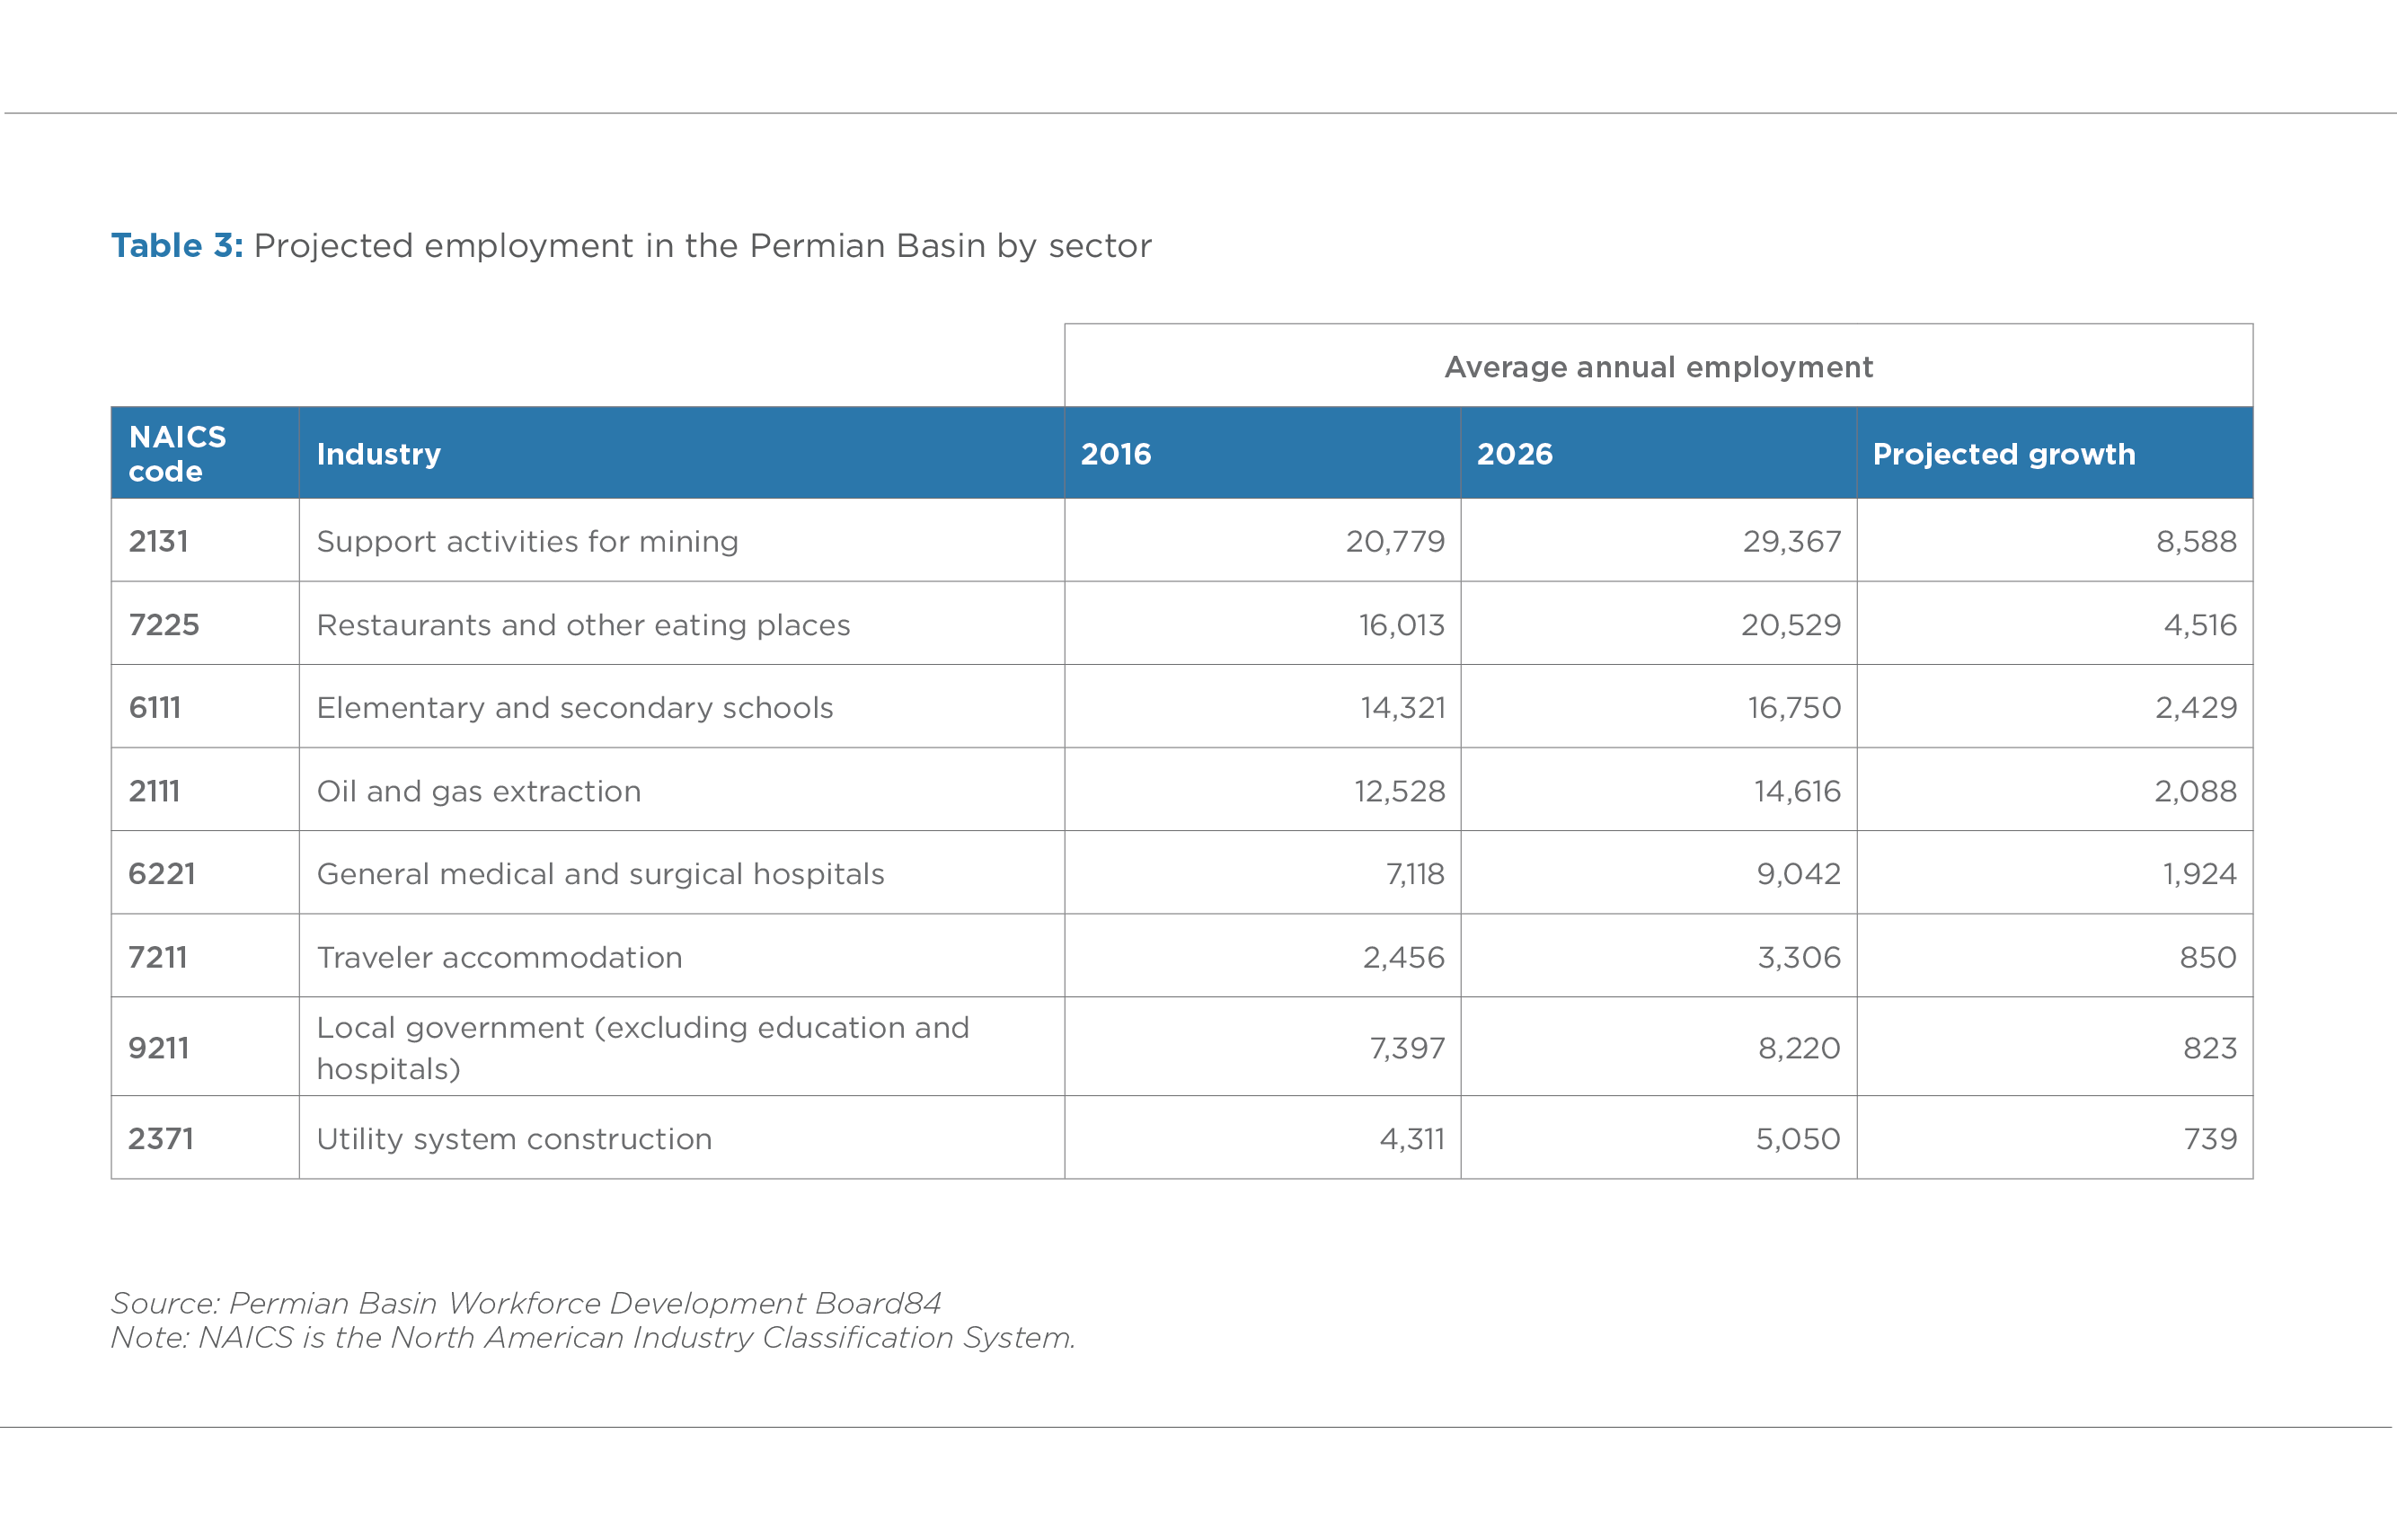 TABLE 3. PROJECTED EMPLOYMENT IN THE PERMIAN BASIN BY SECTOR